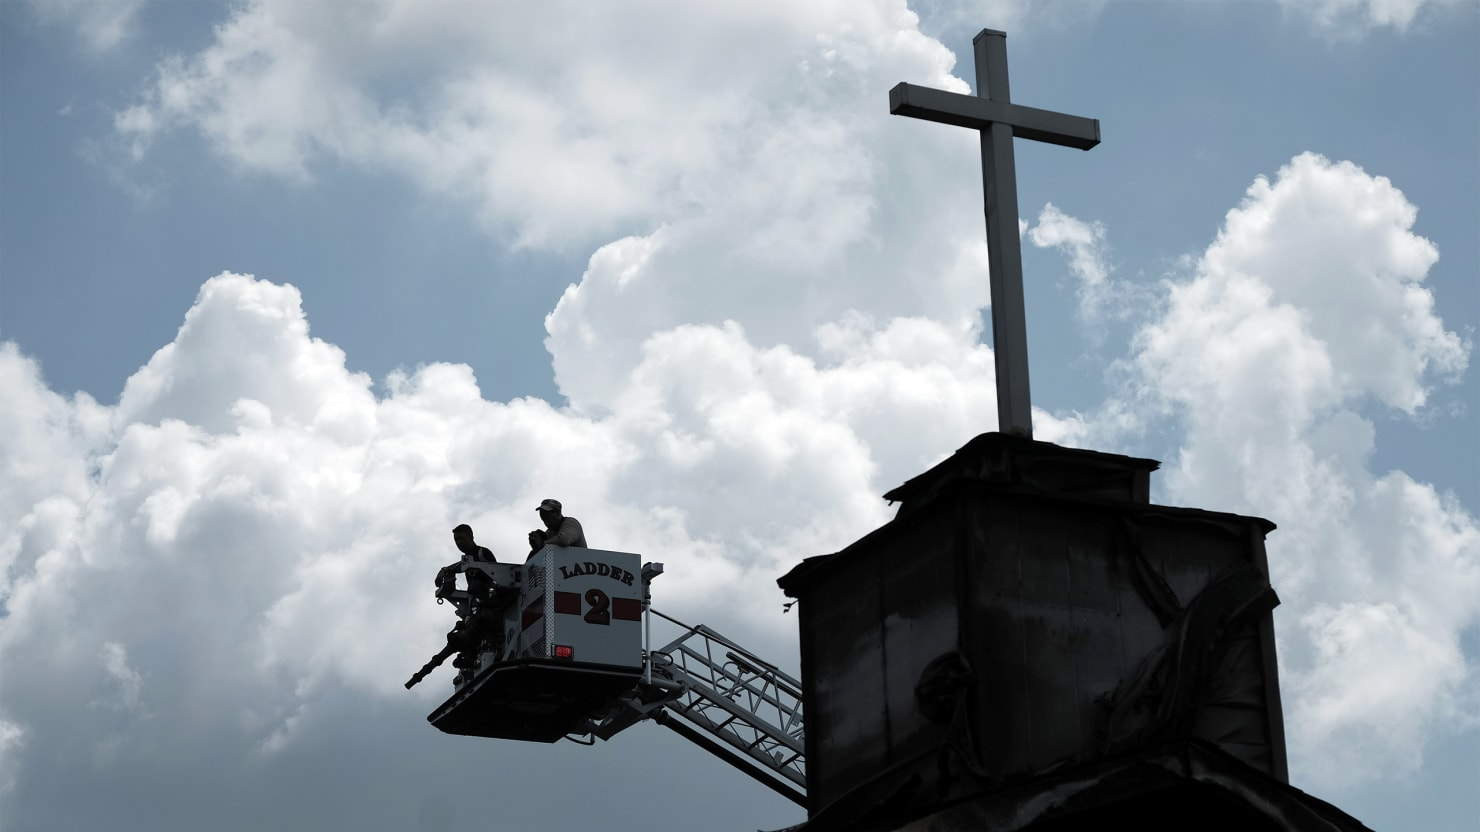 Burned Black Churches May Be 'Violent Backlash' After Charleston Shooting